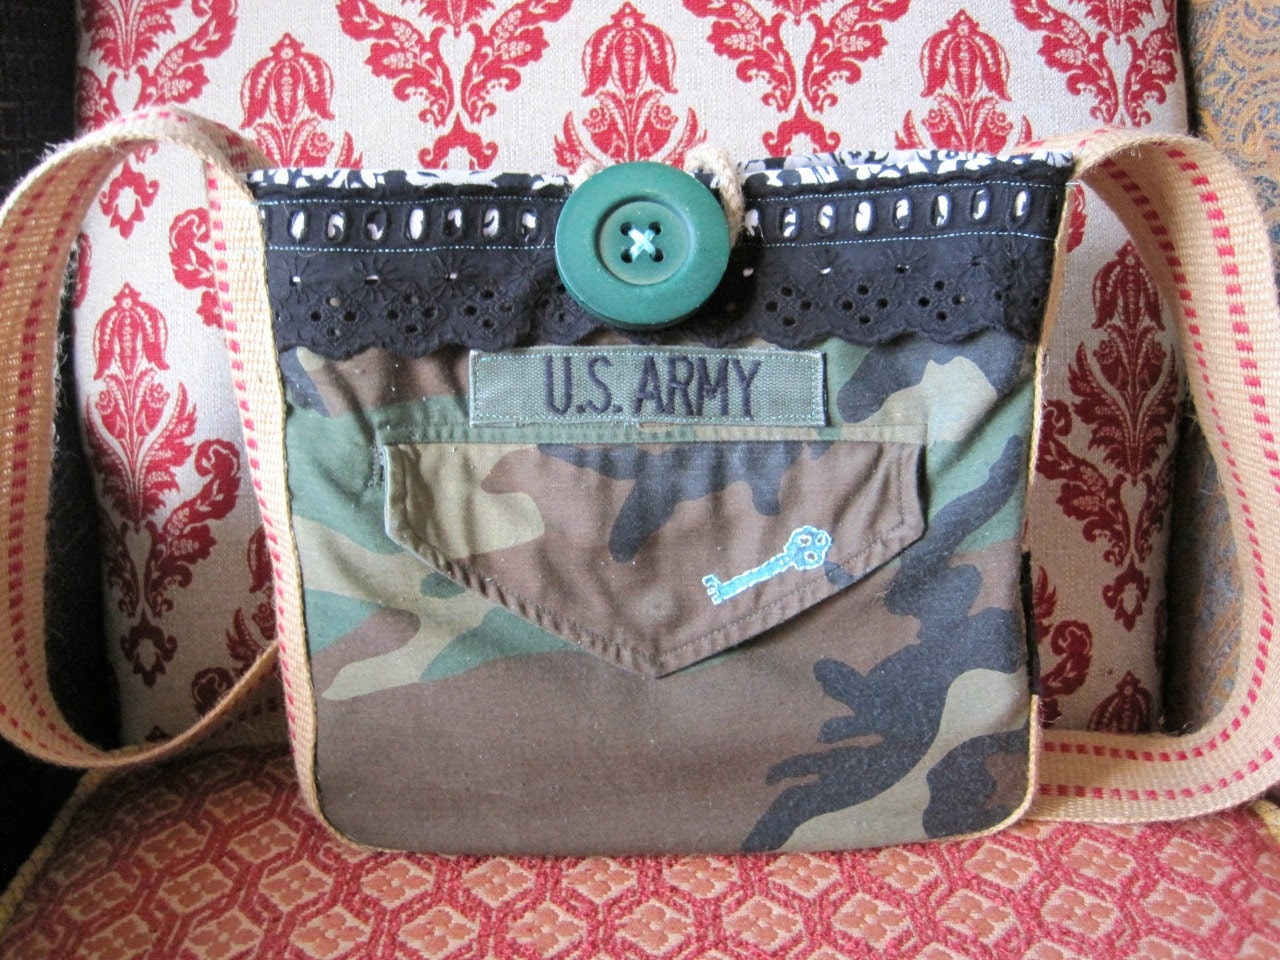 Leah Hip Bag in upcycled Army jacket, hand-stamped and stitched turquoise key, black lace, & damask print